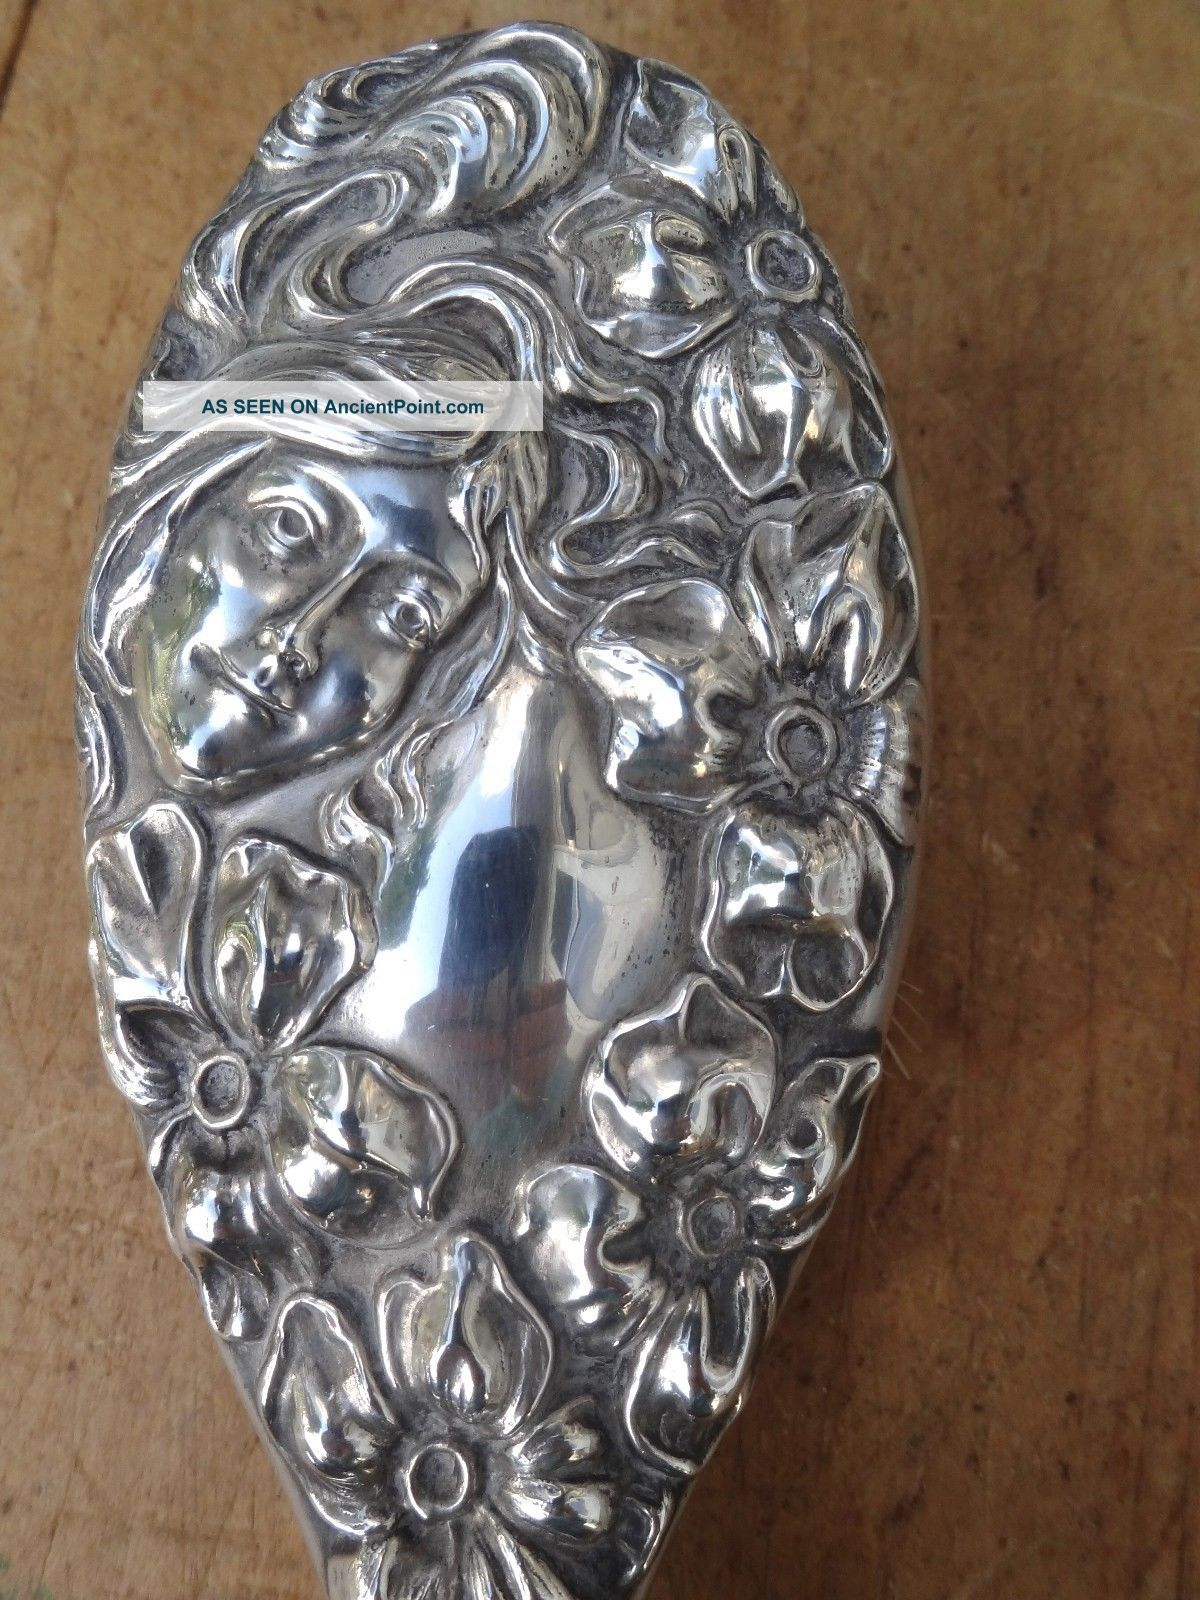 Antique Sterling Art Nouveau Hair Brush - Lady Flowing Hair - Flower - Repousse - Vanity Brushes & Grooming Sets photo